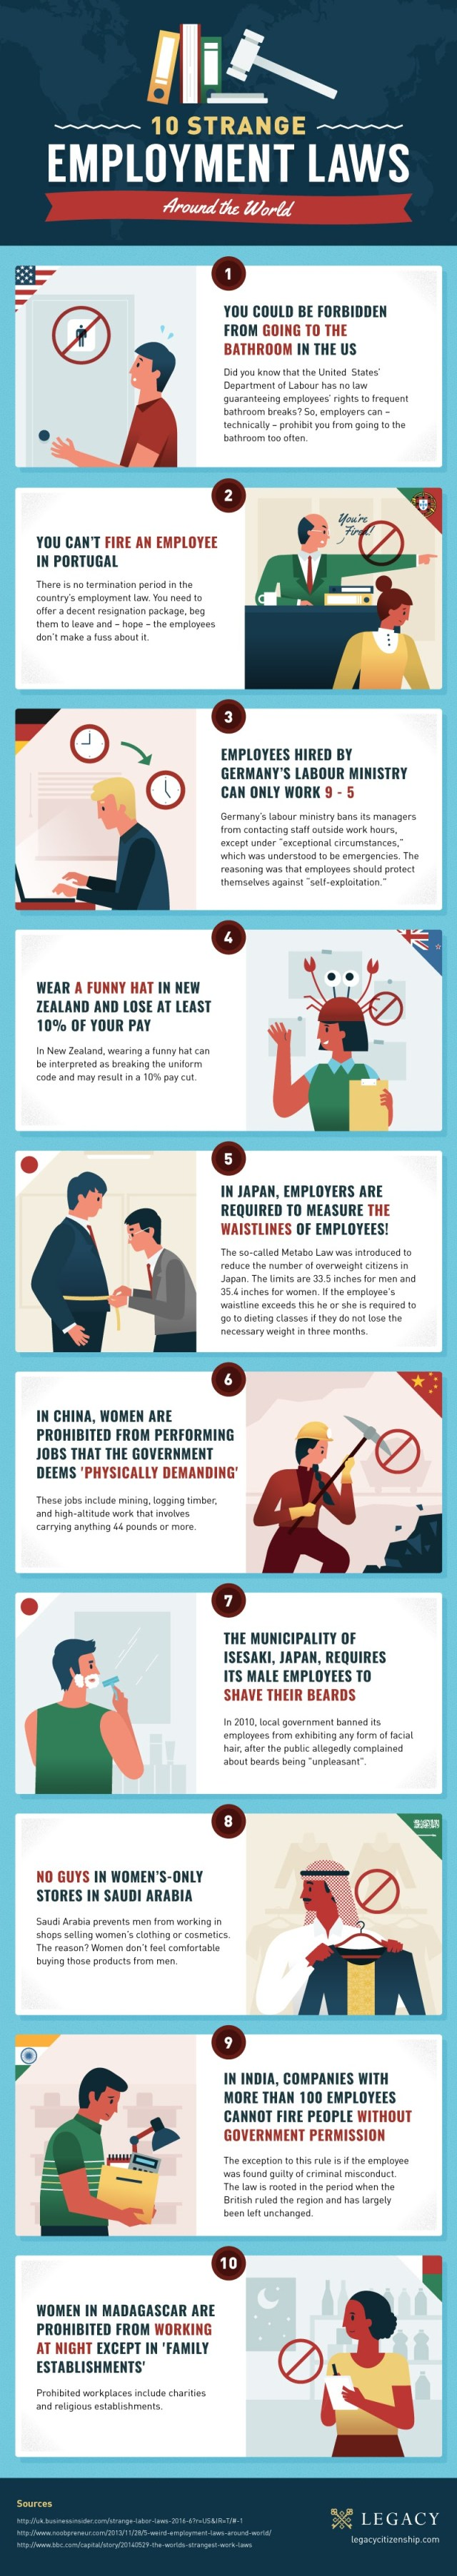 10 Strange Employment Laws Around the World